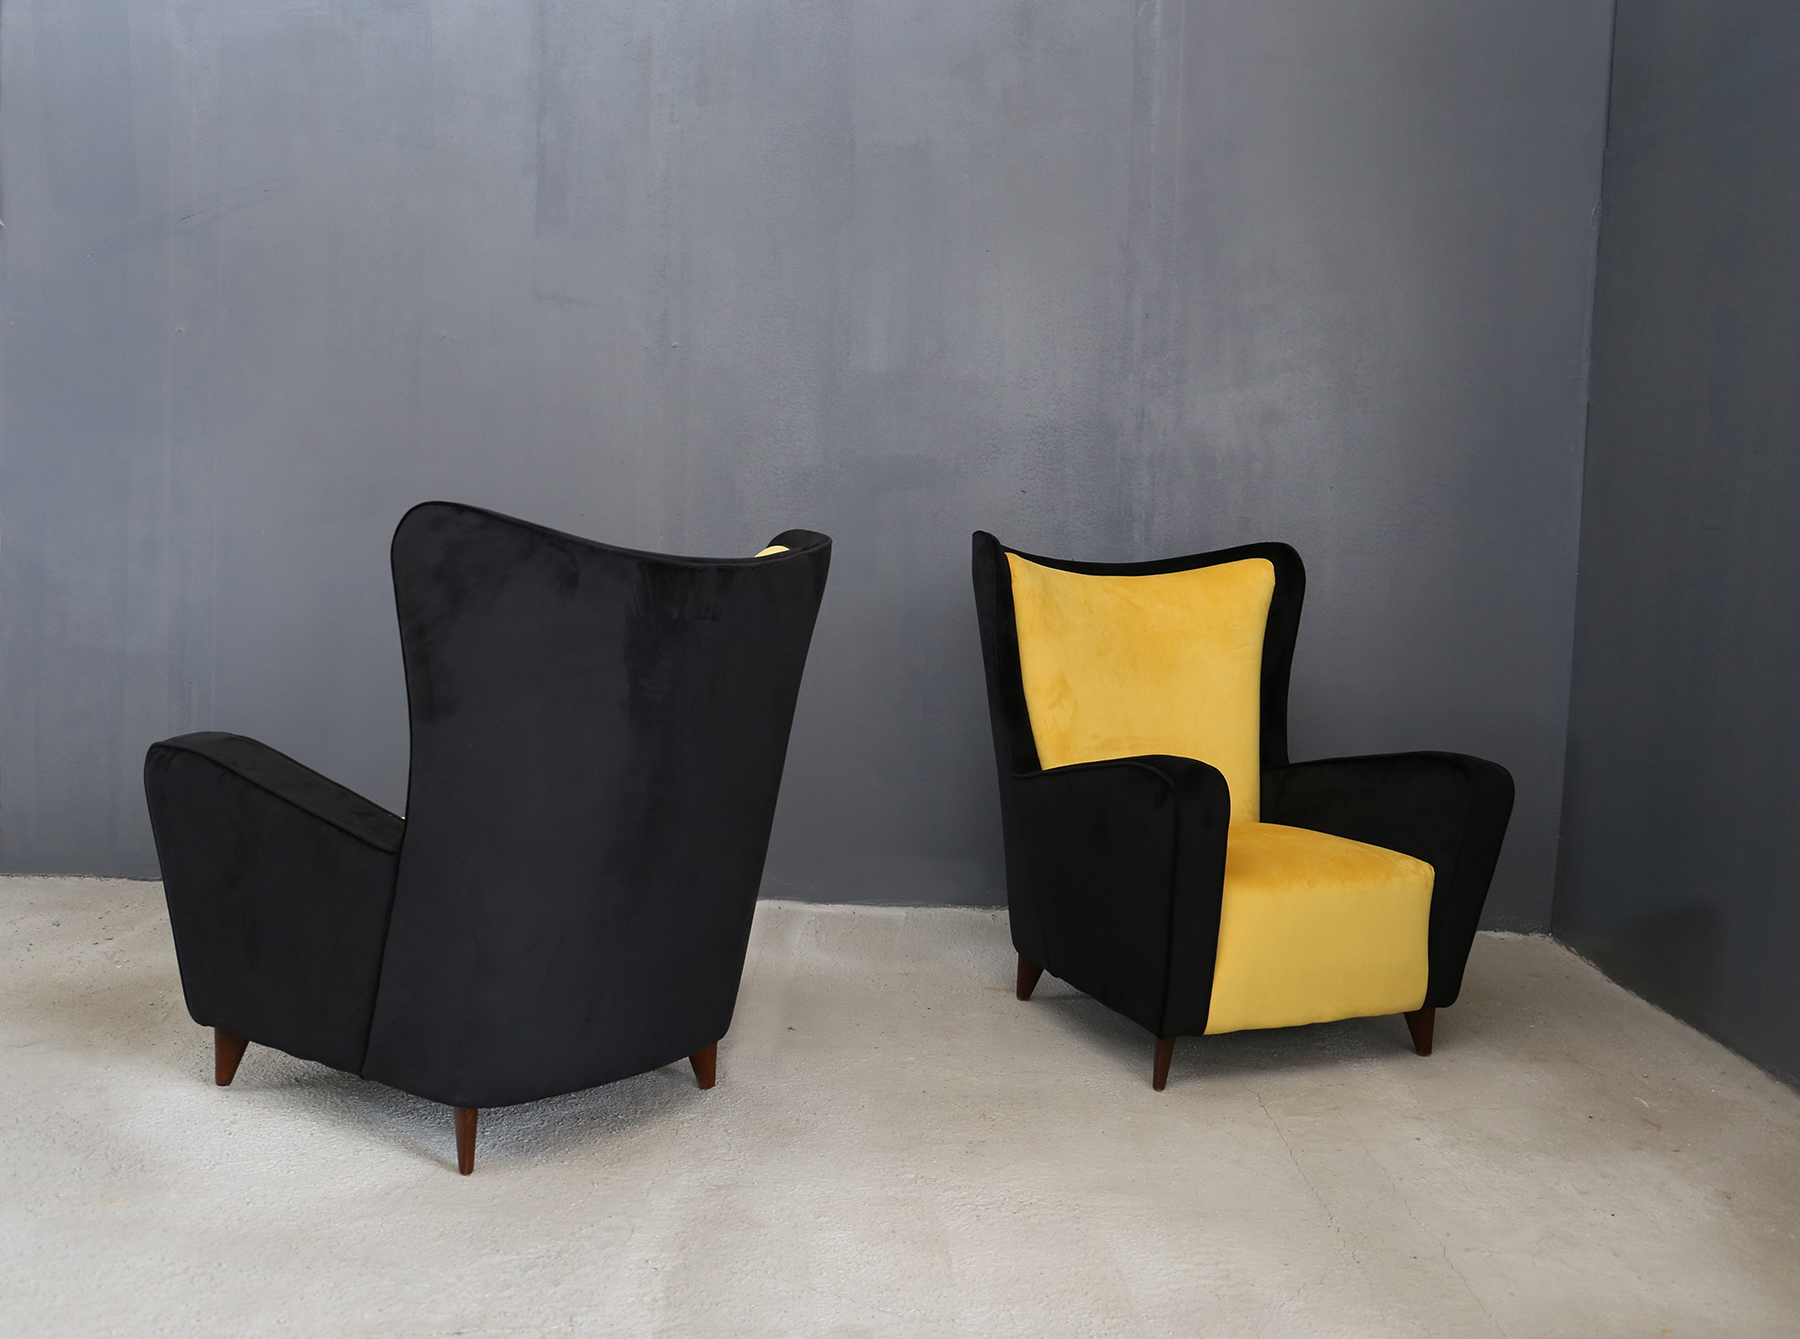 Ico Parisi Poltrone.Ico Parisi Armchairs Restored In 1950 With Double Shell